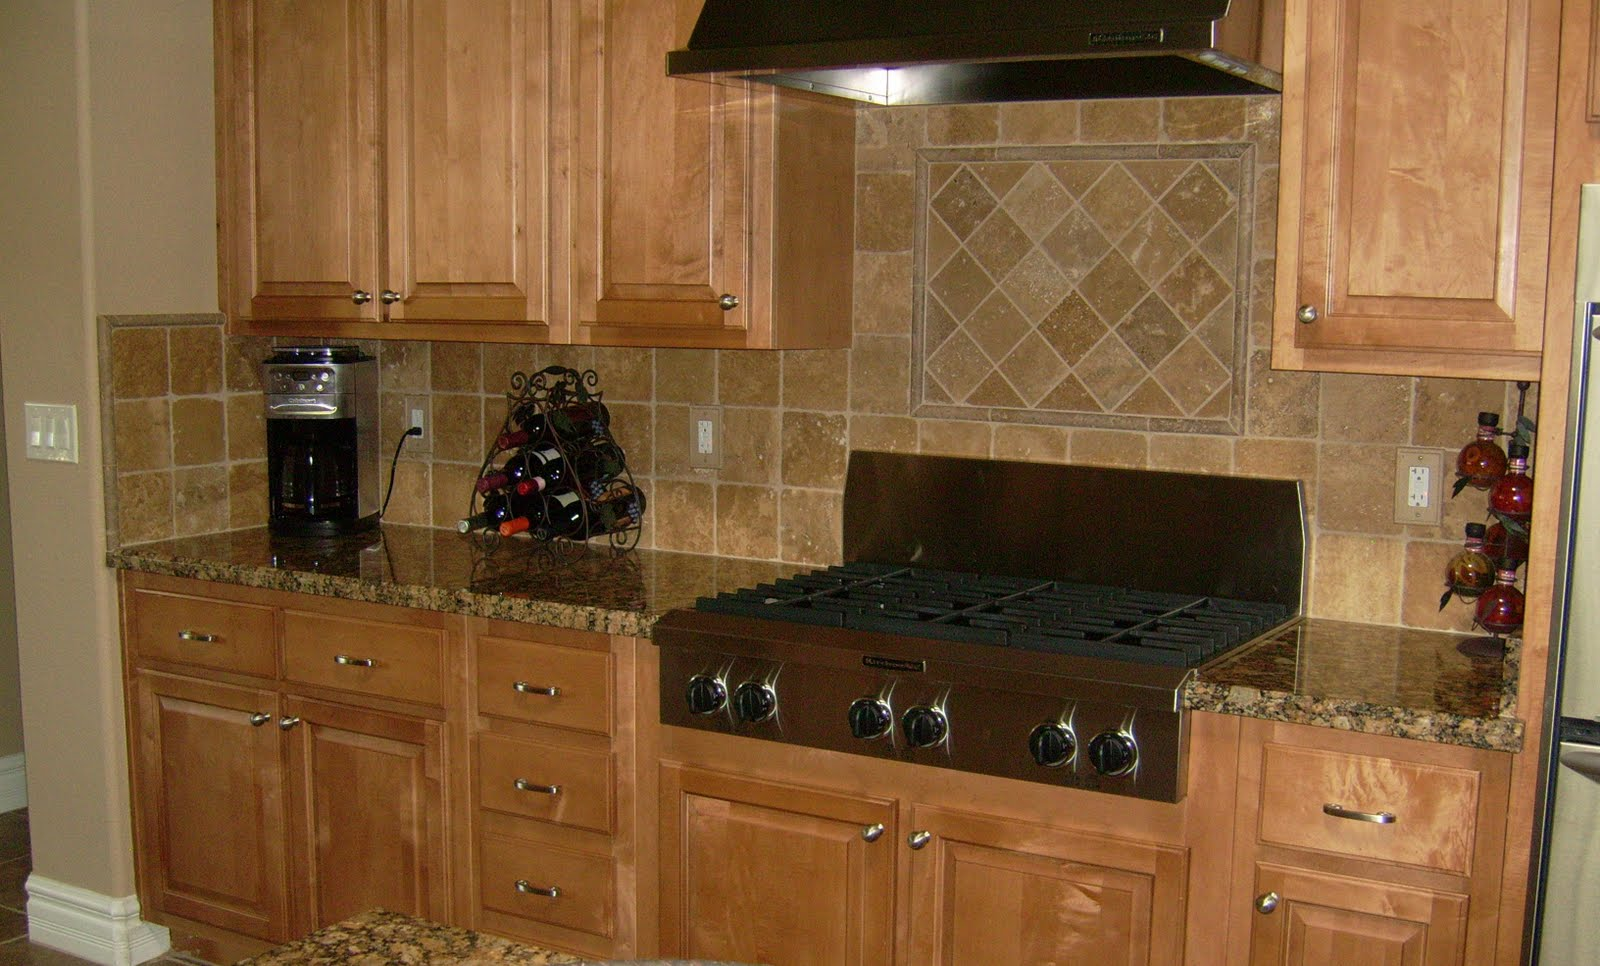 pictures kitchen backsplash ideas modern tile backsplash ideas for kitchen home design ideas